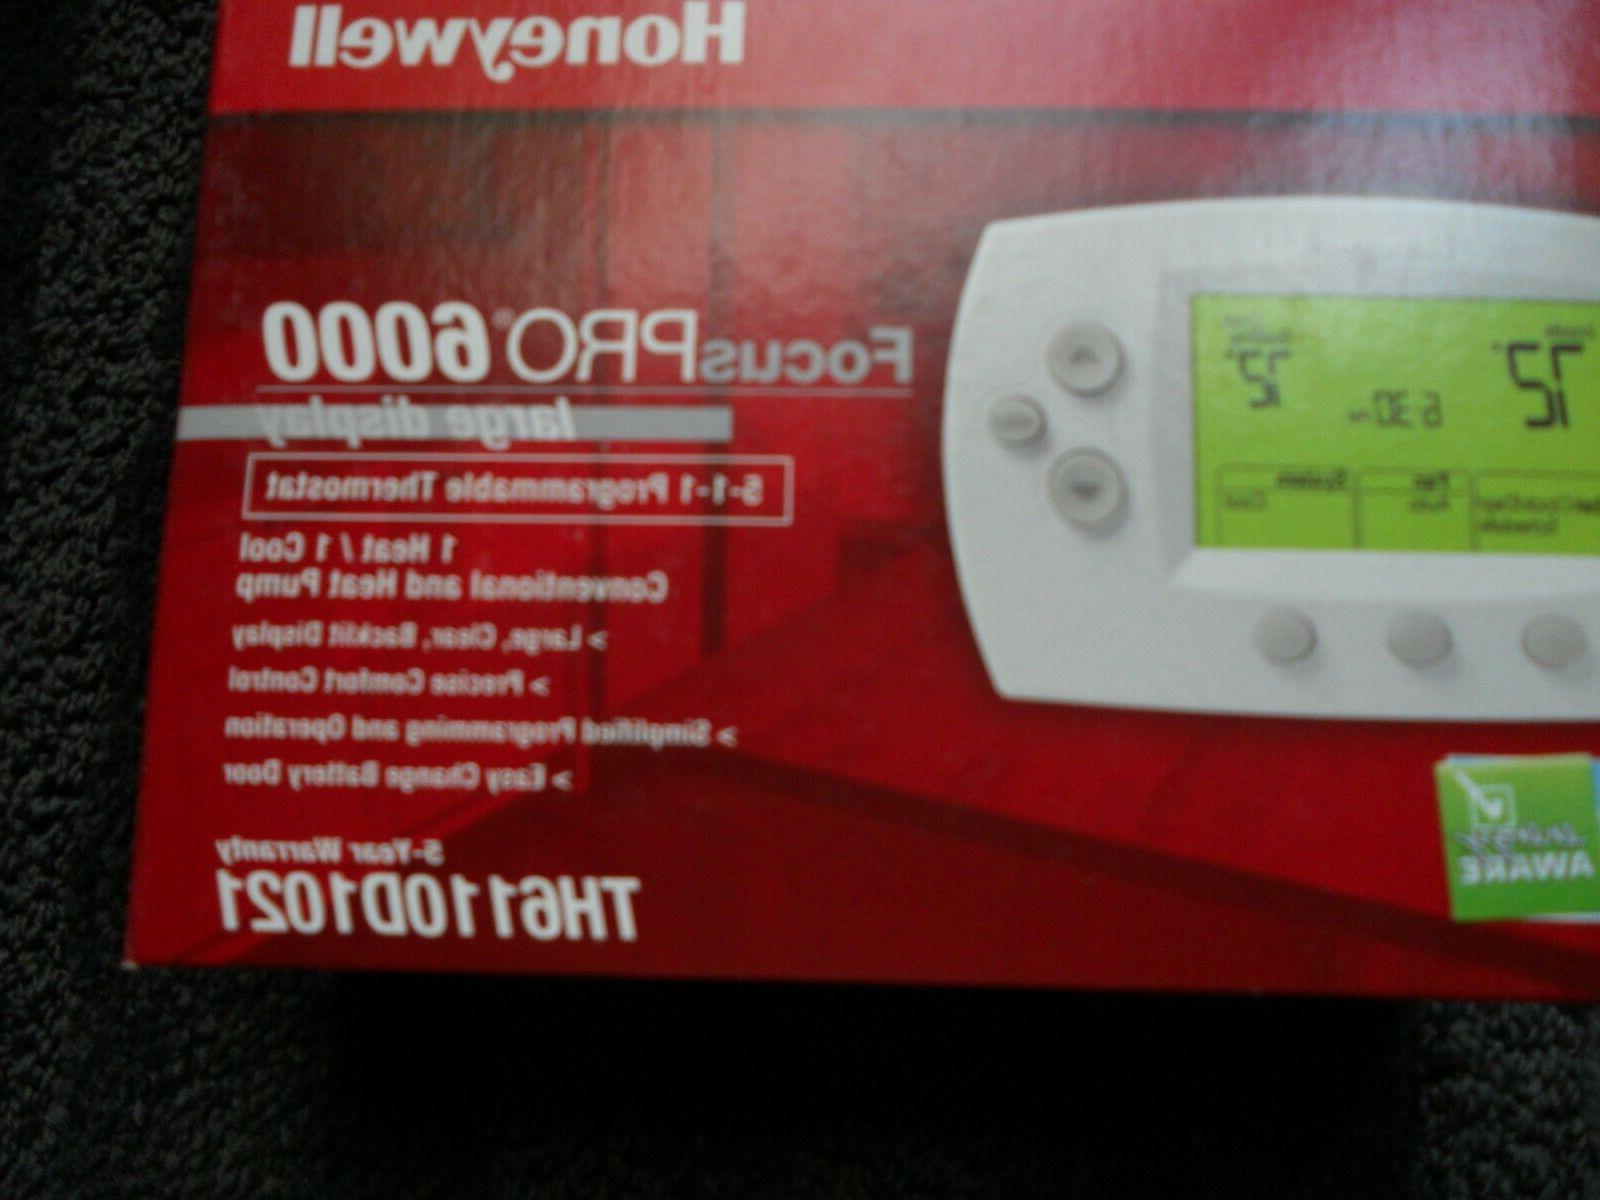 th6110d1021 focuspro programmable digital thermostat new in